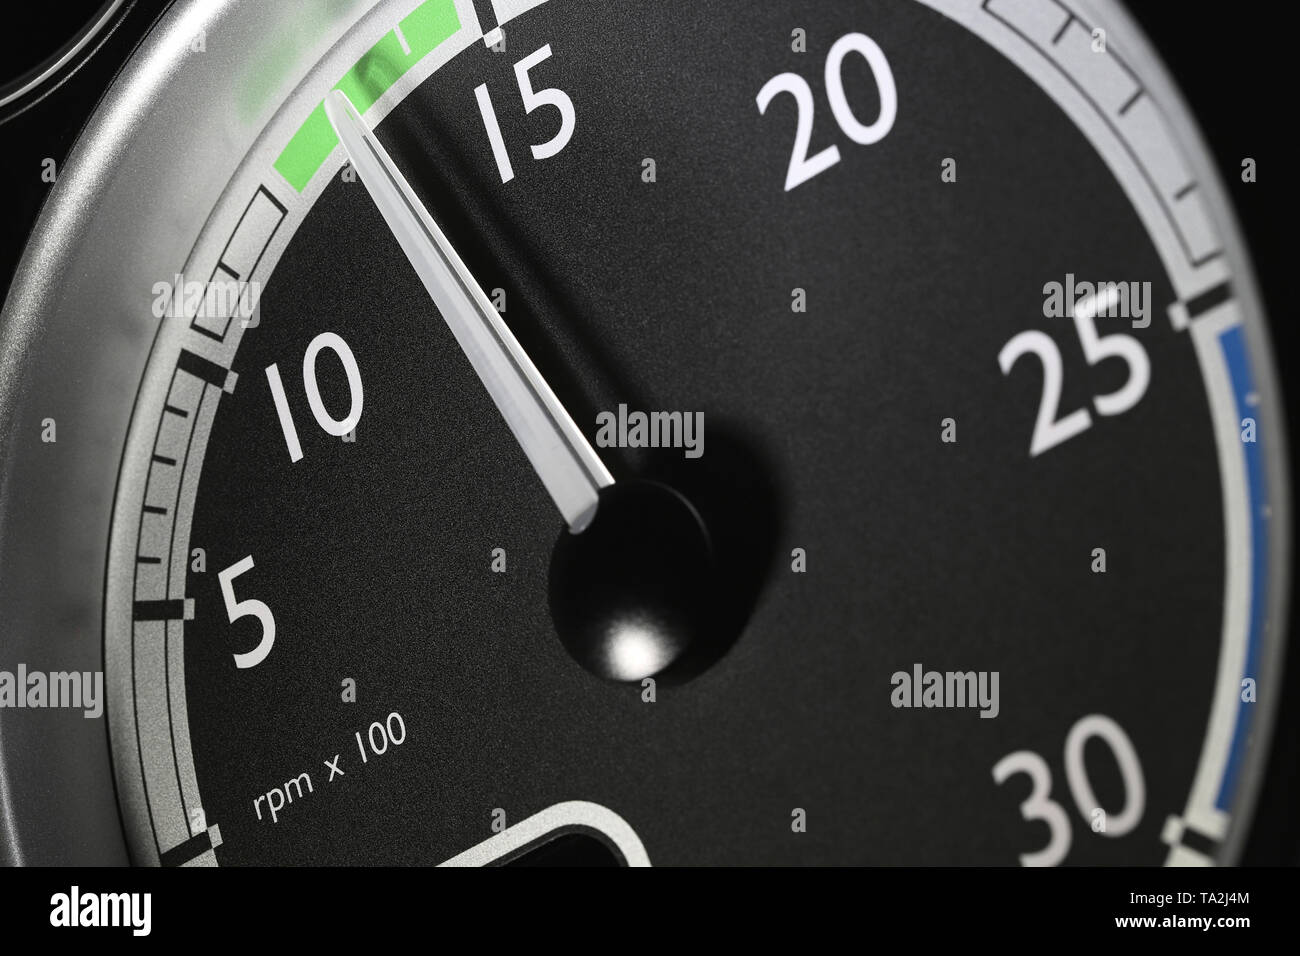 tachometer of a truck at economic mode of operation - Stock Image